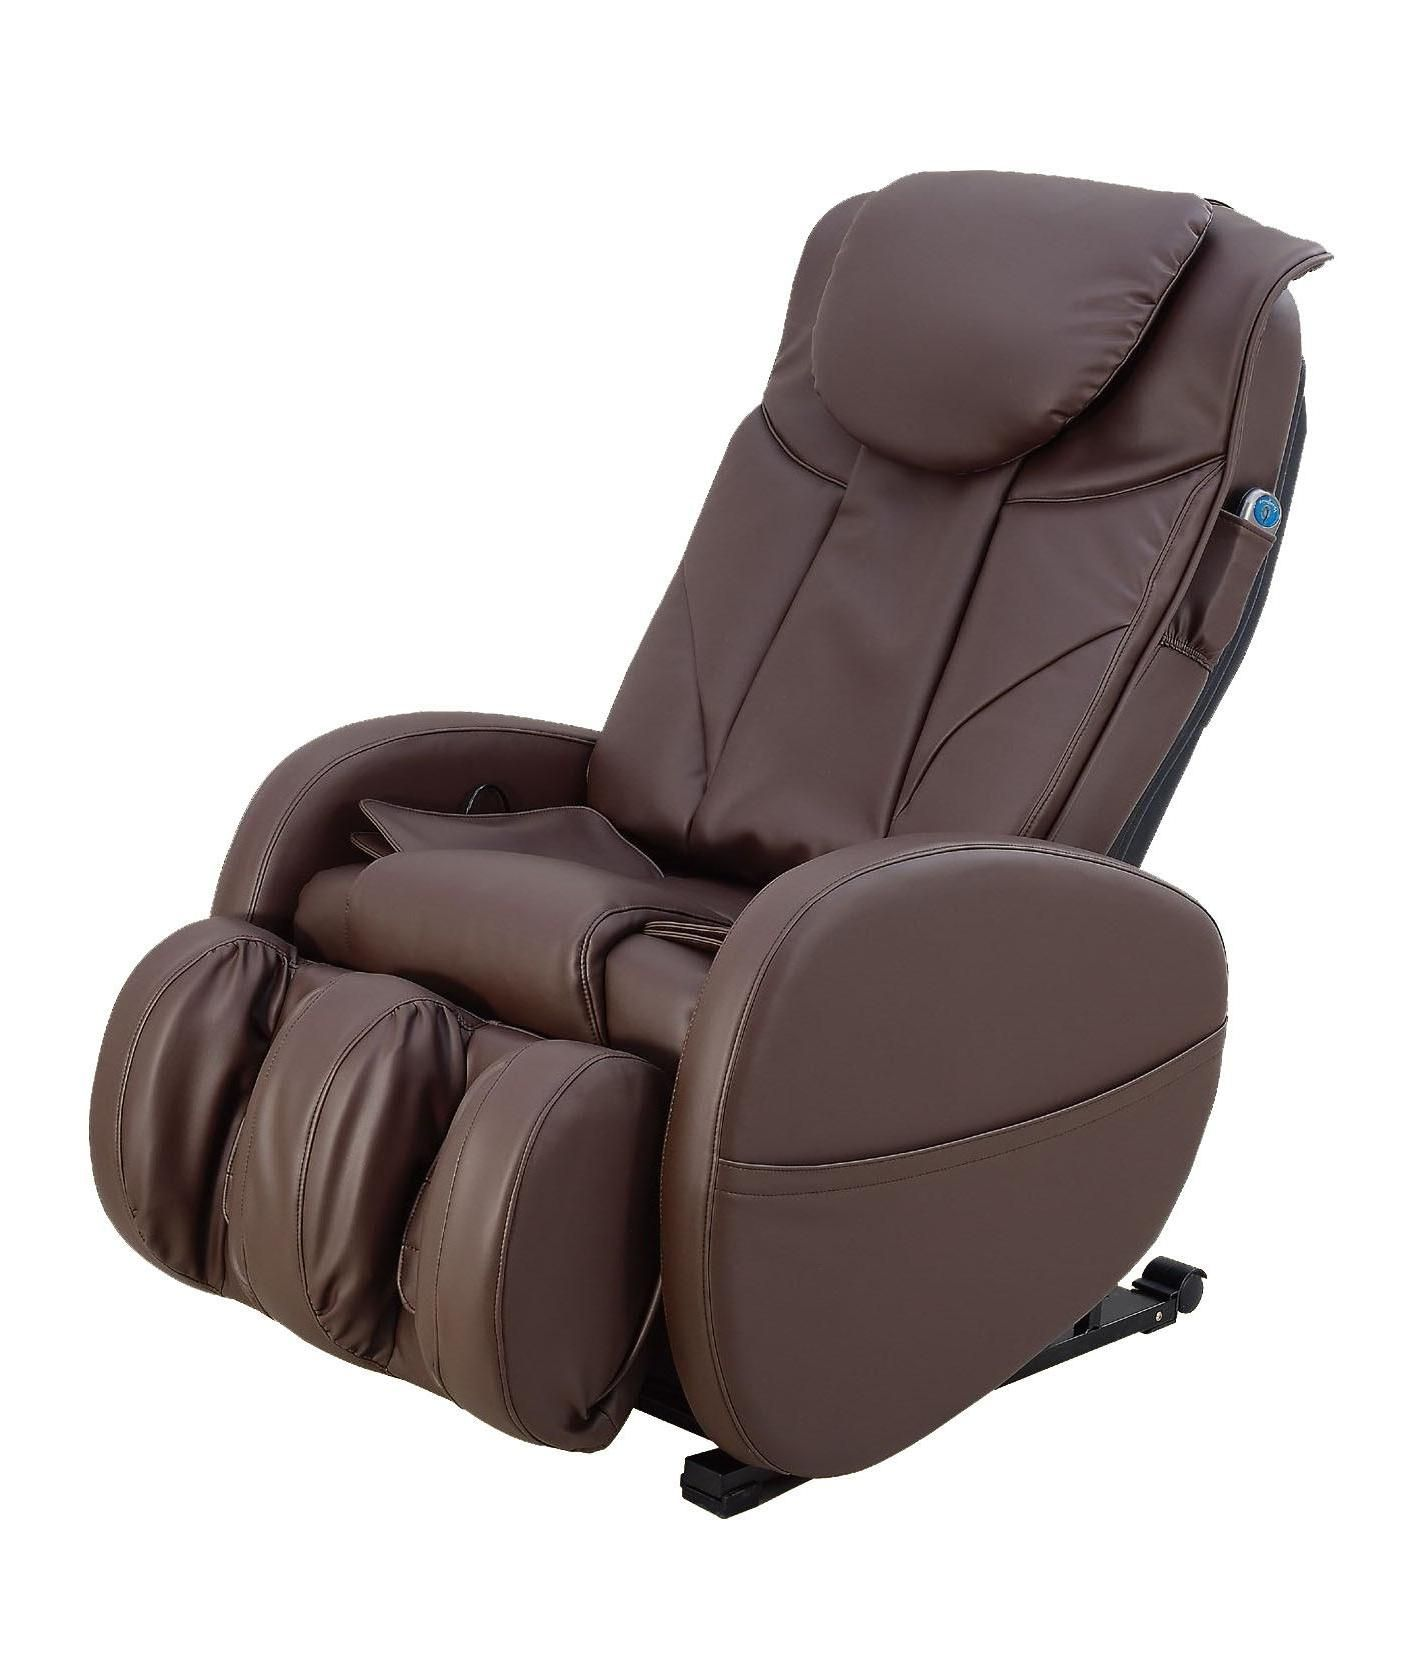 Pin By Massagechairs Com On Massage Chairs Massage Chair Ergonomic Chair Chairs For Sale